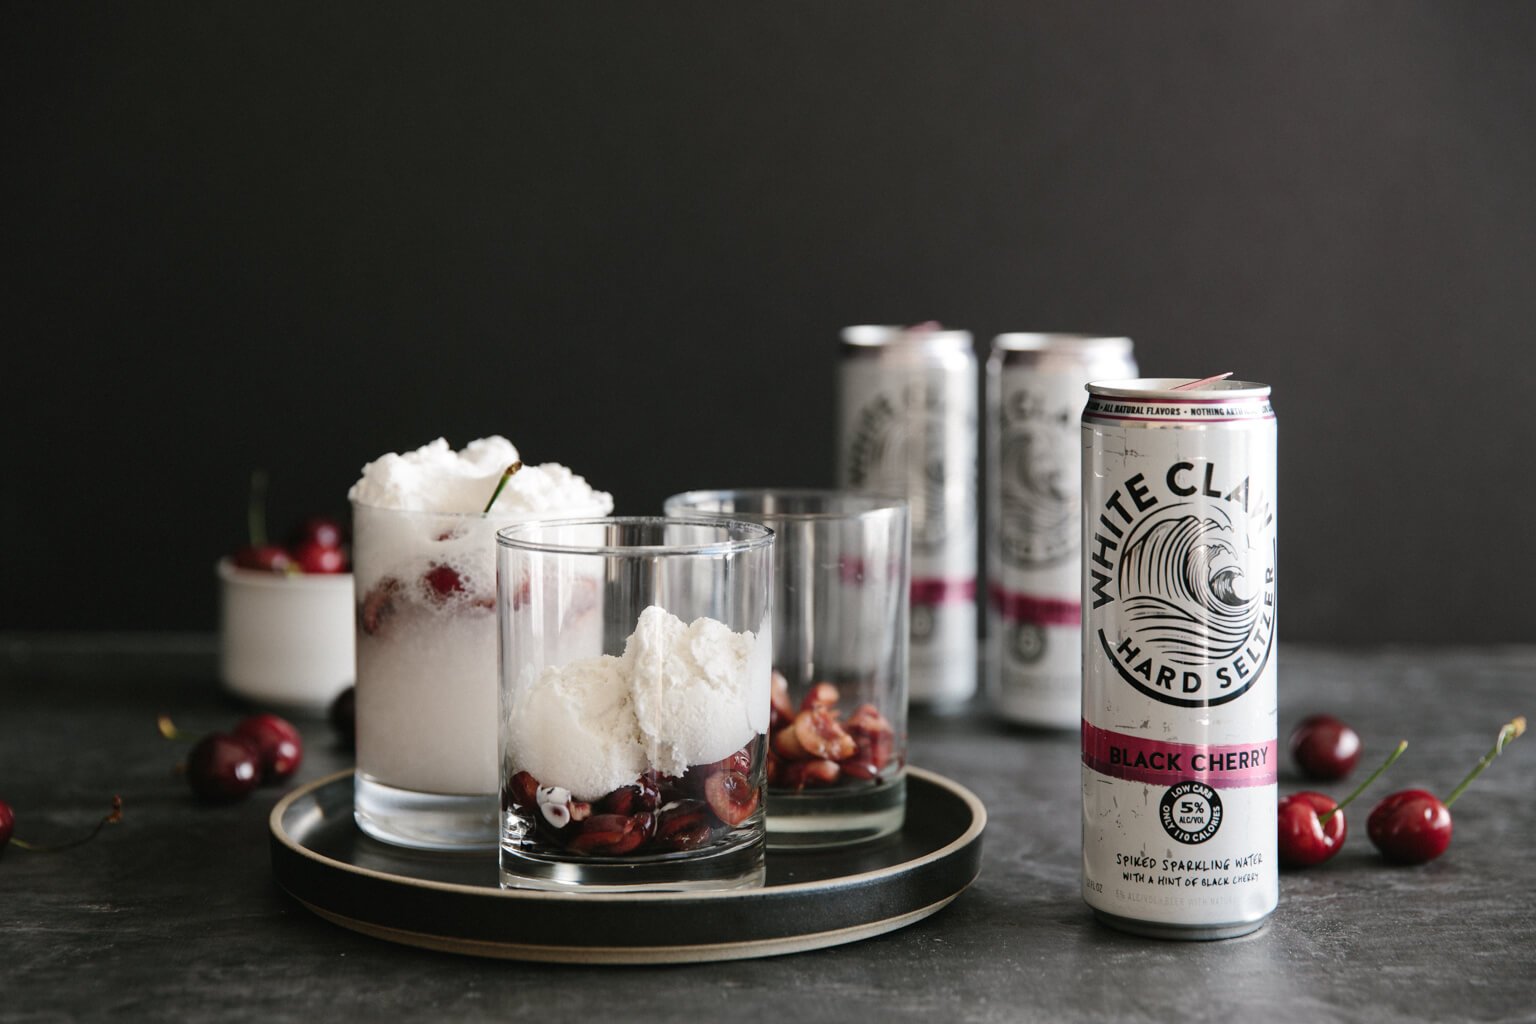 Spiked coconut cherry float (dairy-free, vegan). The perfect cocktail or summertime drink with just a smidge of alcohol.